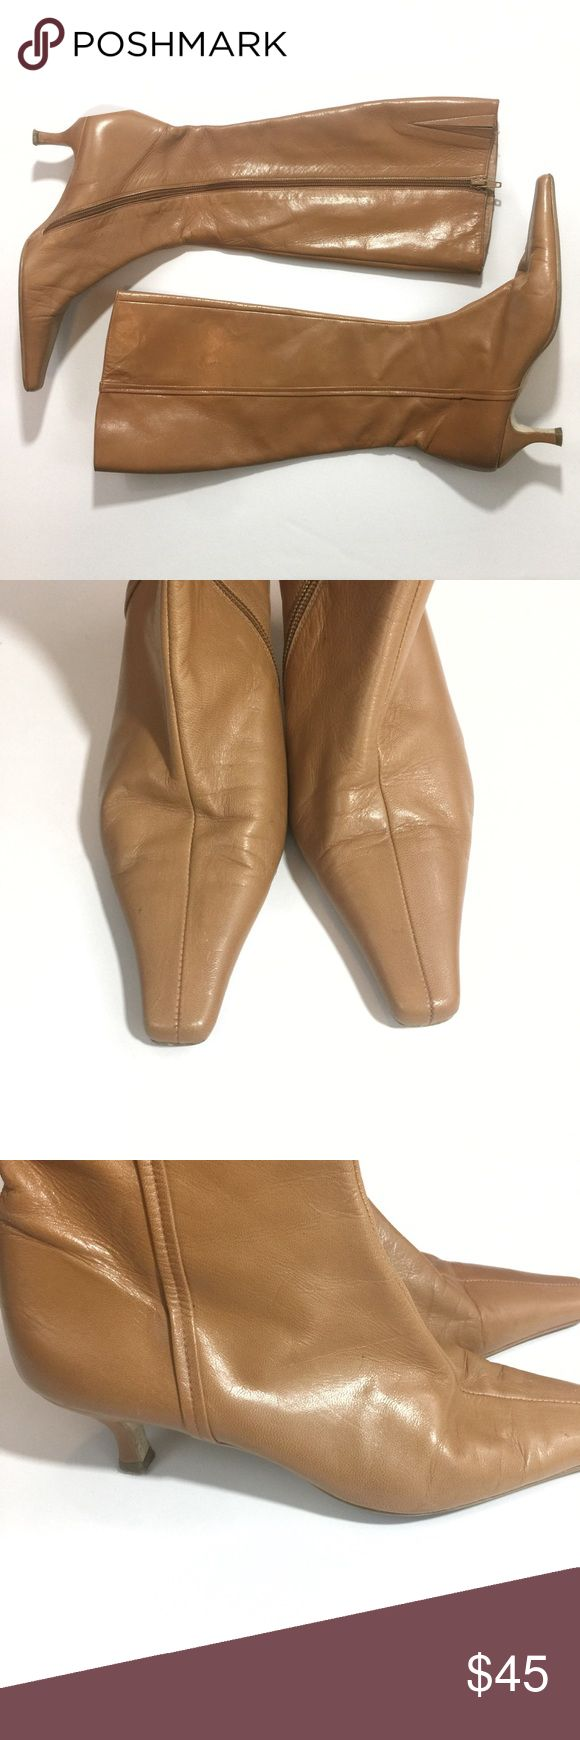 Vintage Zara Tan Knee High Kitten Heel Boots 39/9 A beautiful pair of tan colored knee high boots with a kitten heel by Zara. Zips down the side. Size 39/9. Zara Shoes Heeled Boots